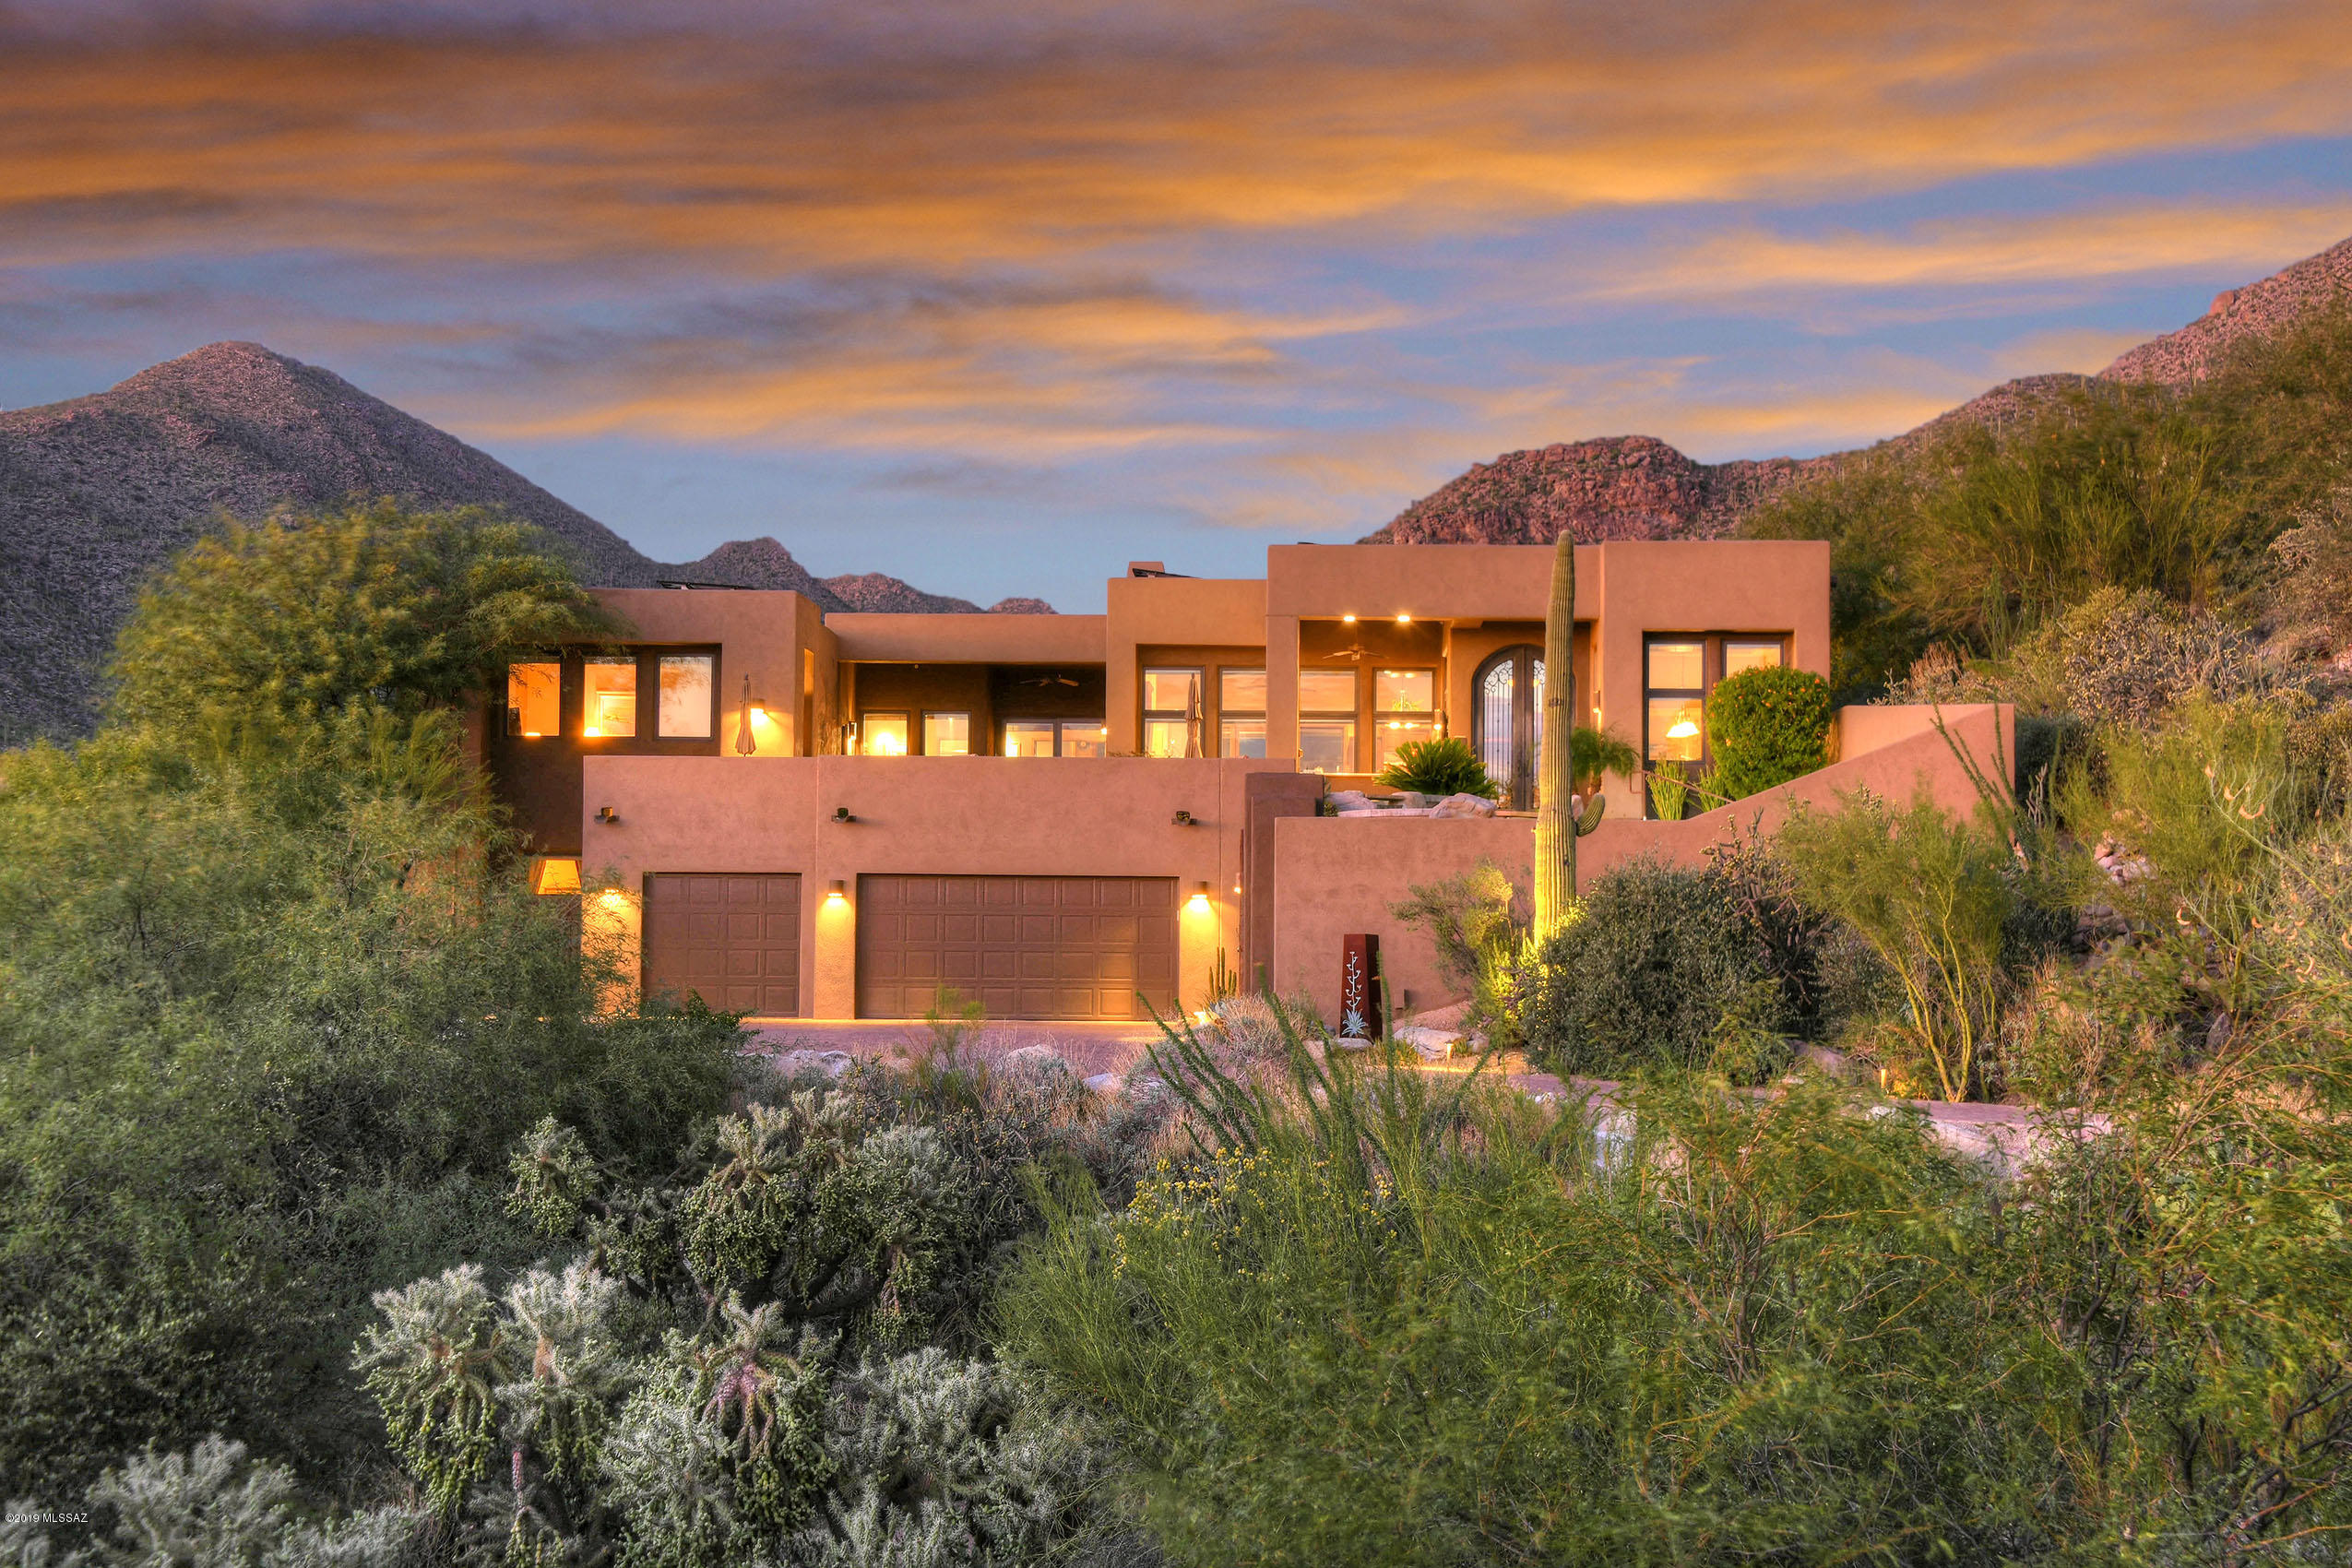 Photo of 13998 N DOVE CANYON PASS, Marana, AZ 85658